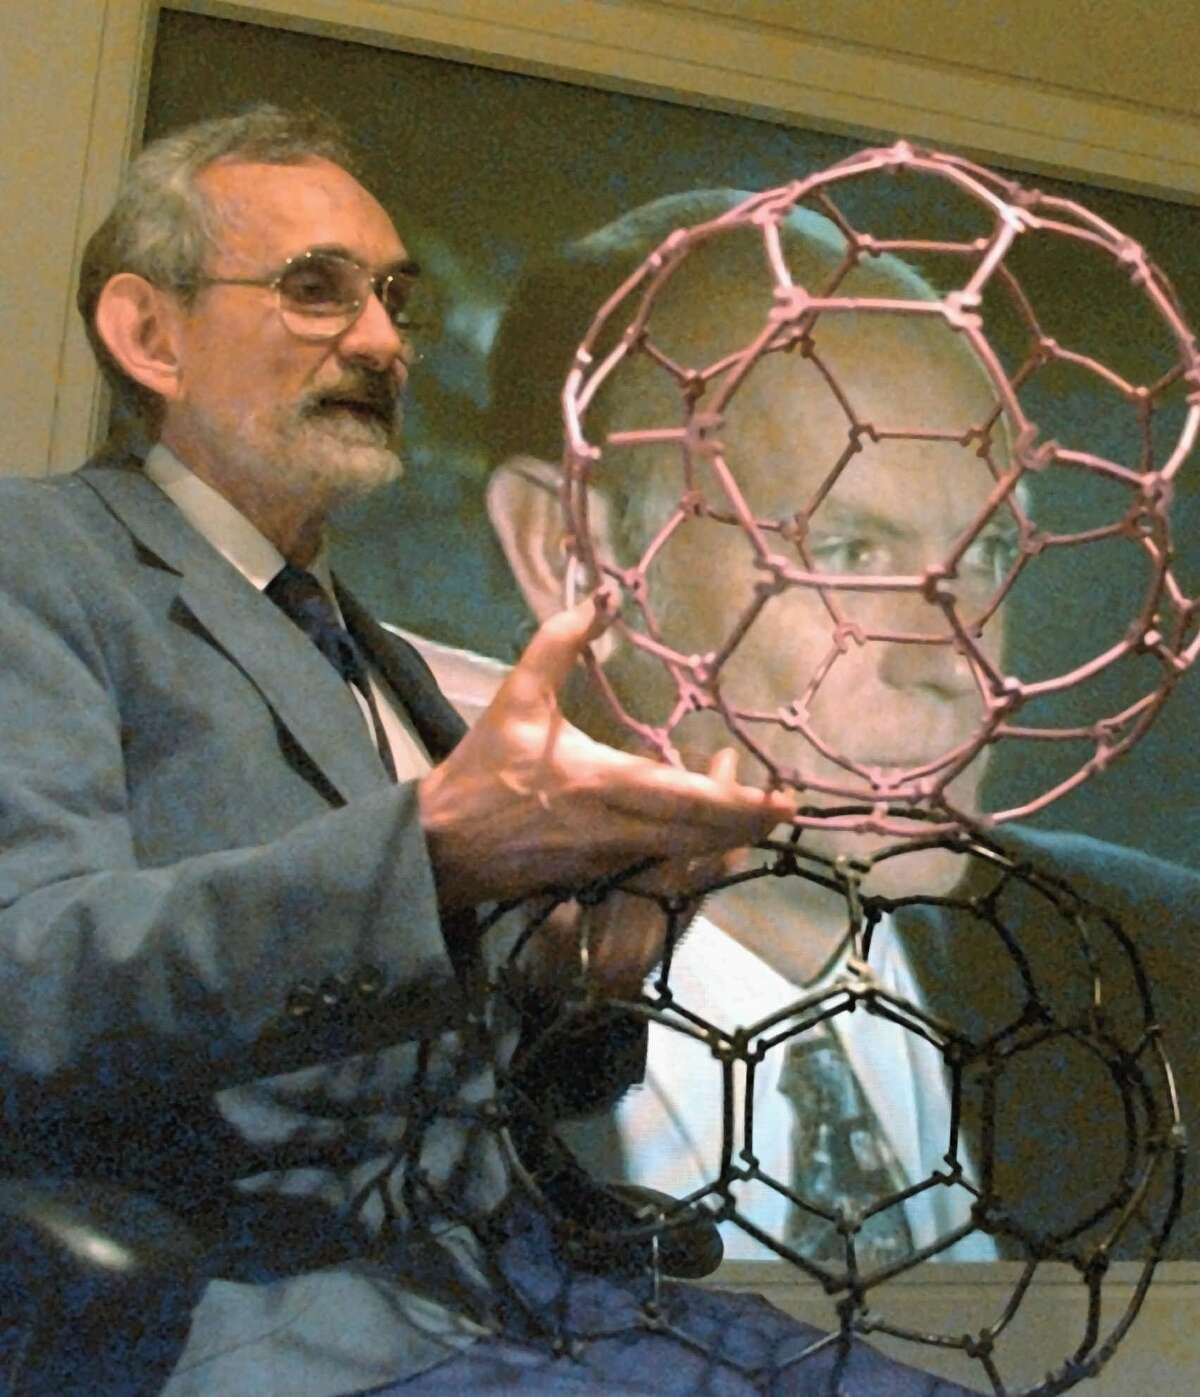 Robert Curl, left, holds plastic molecule models as he talks about the discoveries that earned him the Nobel Prize in Chemistry Wednesday, Oct. 9, 1996, at Rice University in Houston. Co-winner Richard Smalley appears on the television screen behind Curl from Connecticut. The pair, who will share the prize with Harry Kroto of the University of Sussex in Brighton, England, were awarded for their 1985 discovery of a family of soccer ball-shaped carbon molecules known unofficially as ``buckyballs'' and officially as fullerenes, the unusual molecules were named for R. Buckminster Fuller because their structure resembles his famed geodesic domes. (AP Photo/Pat Sullivan)